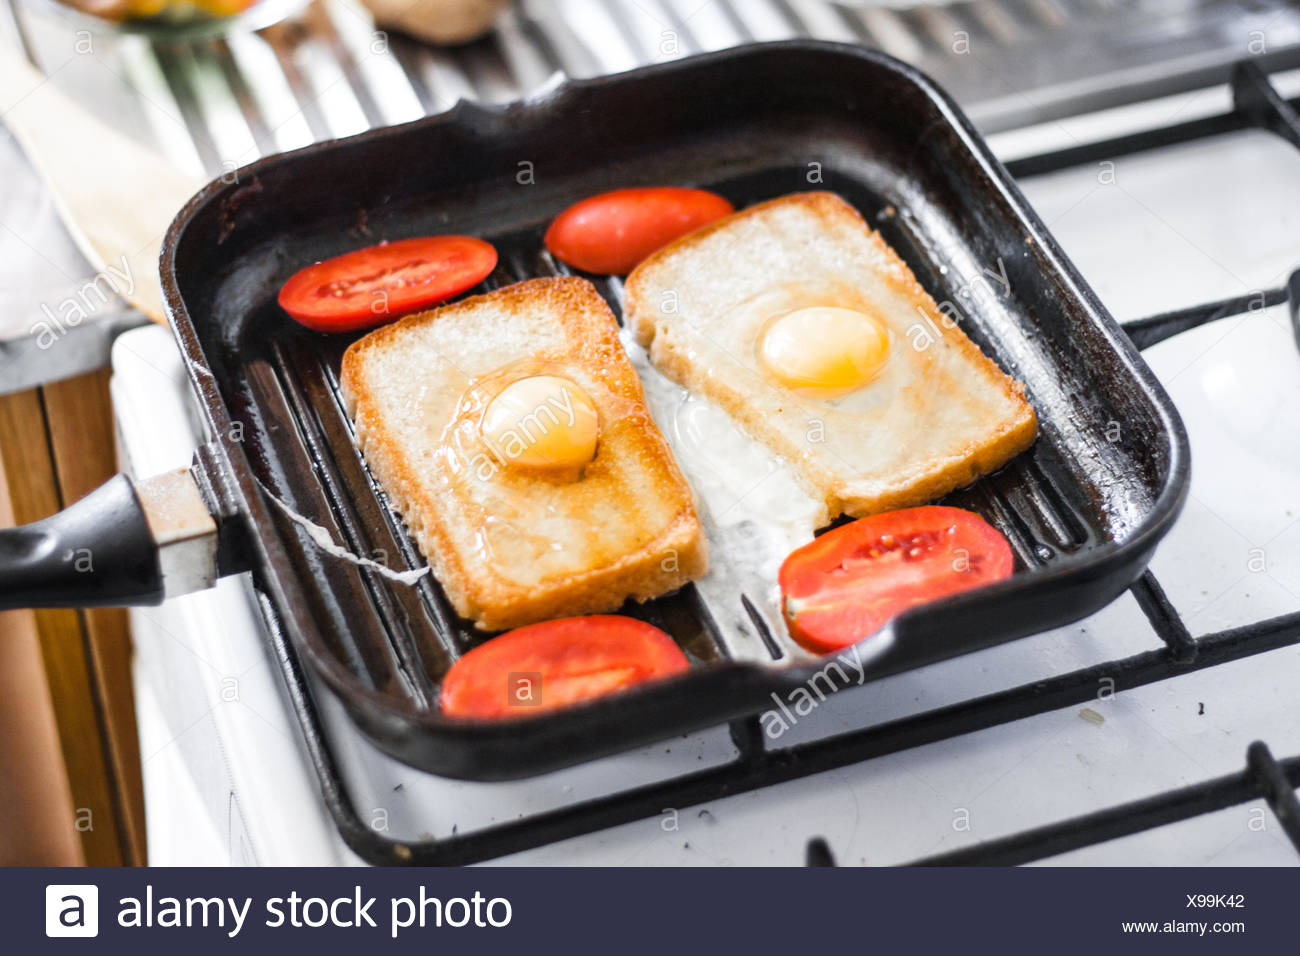 Fried egg in a frying pan - Stock Image